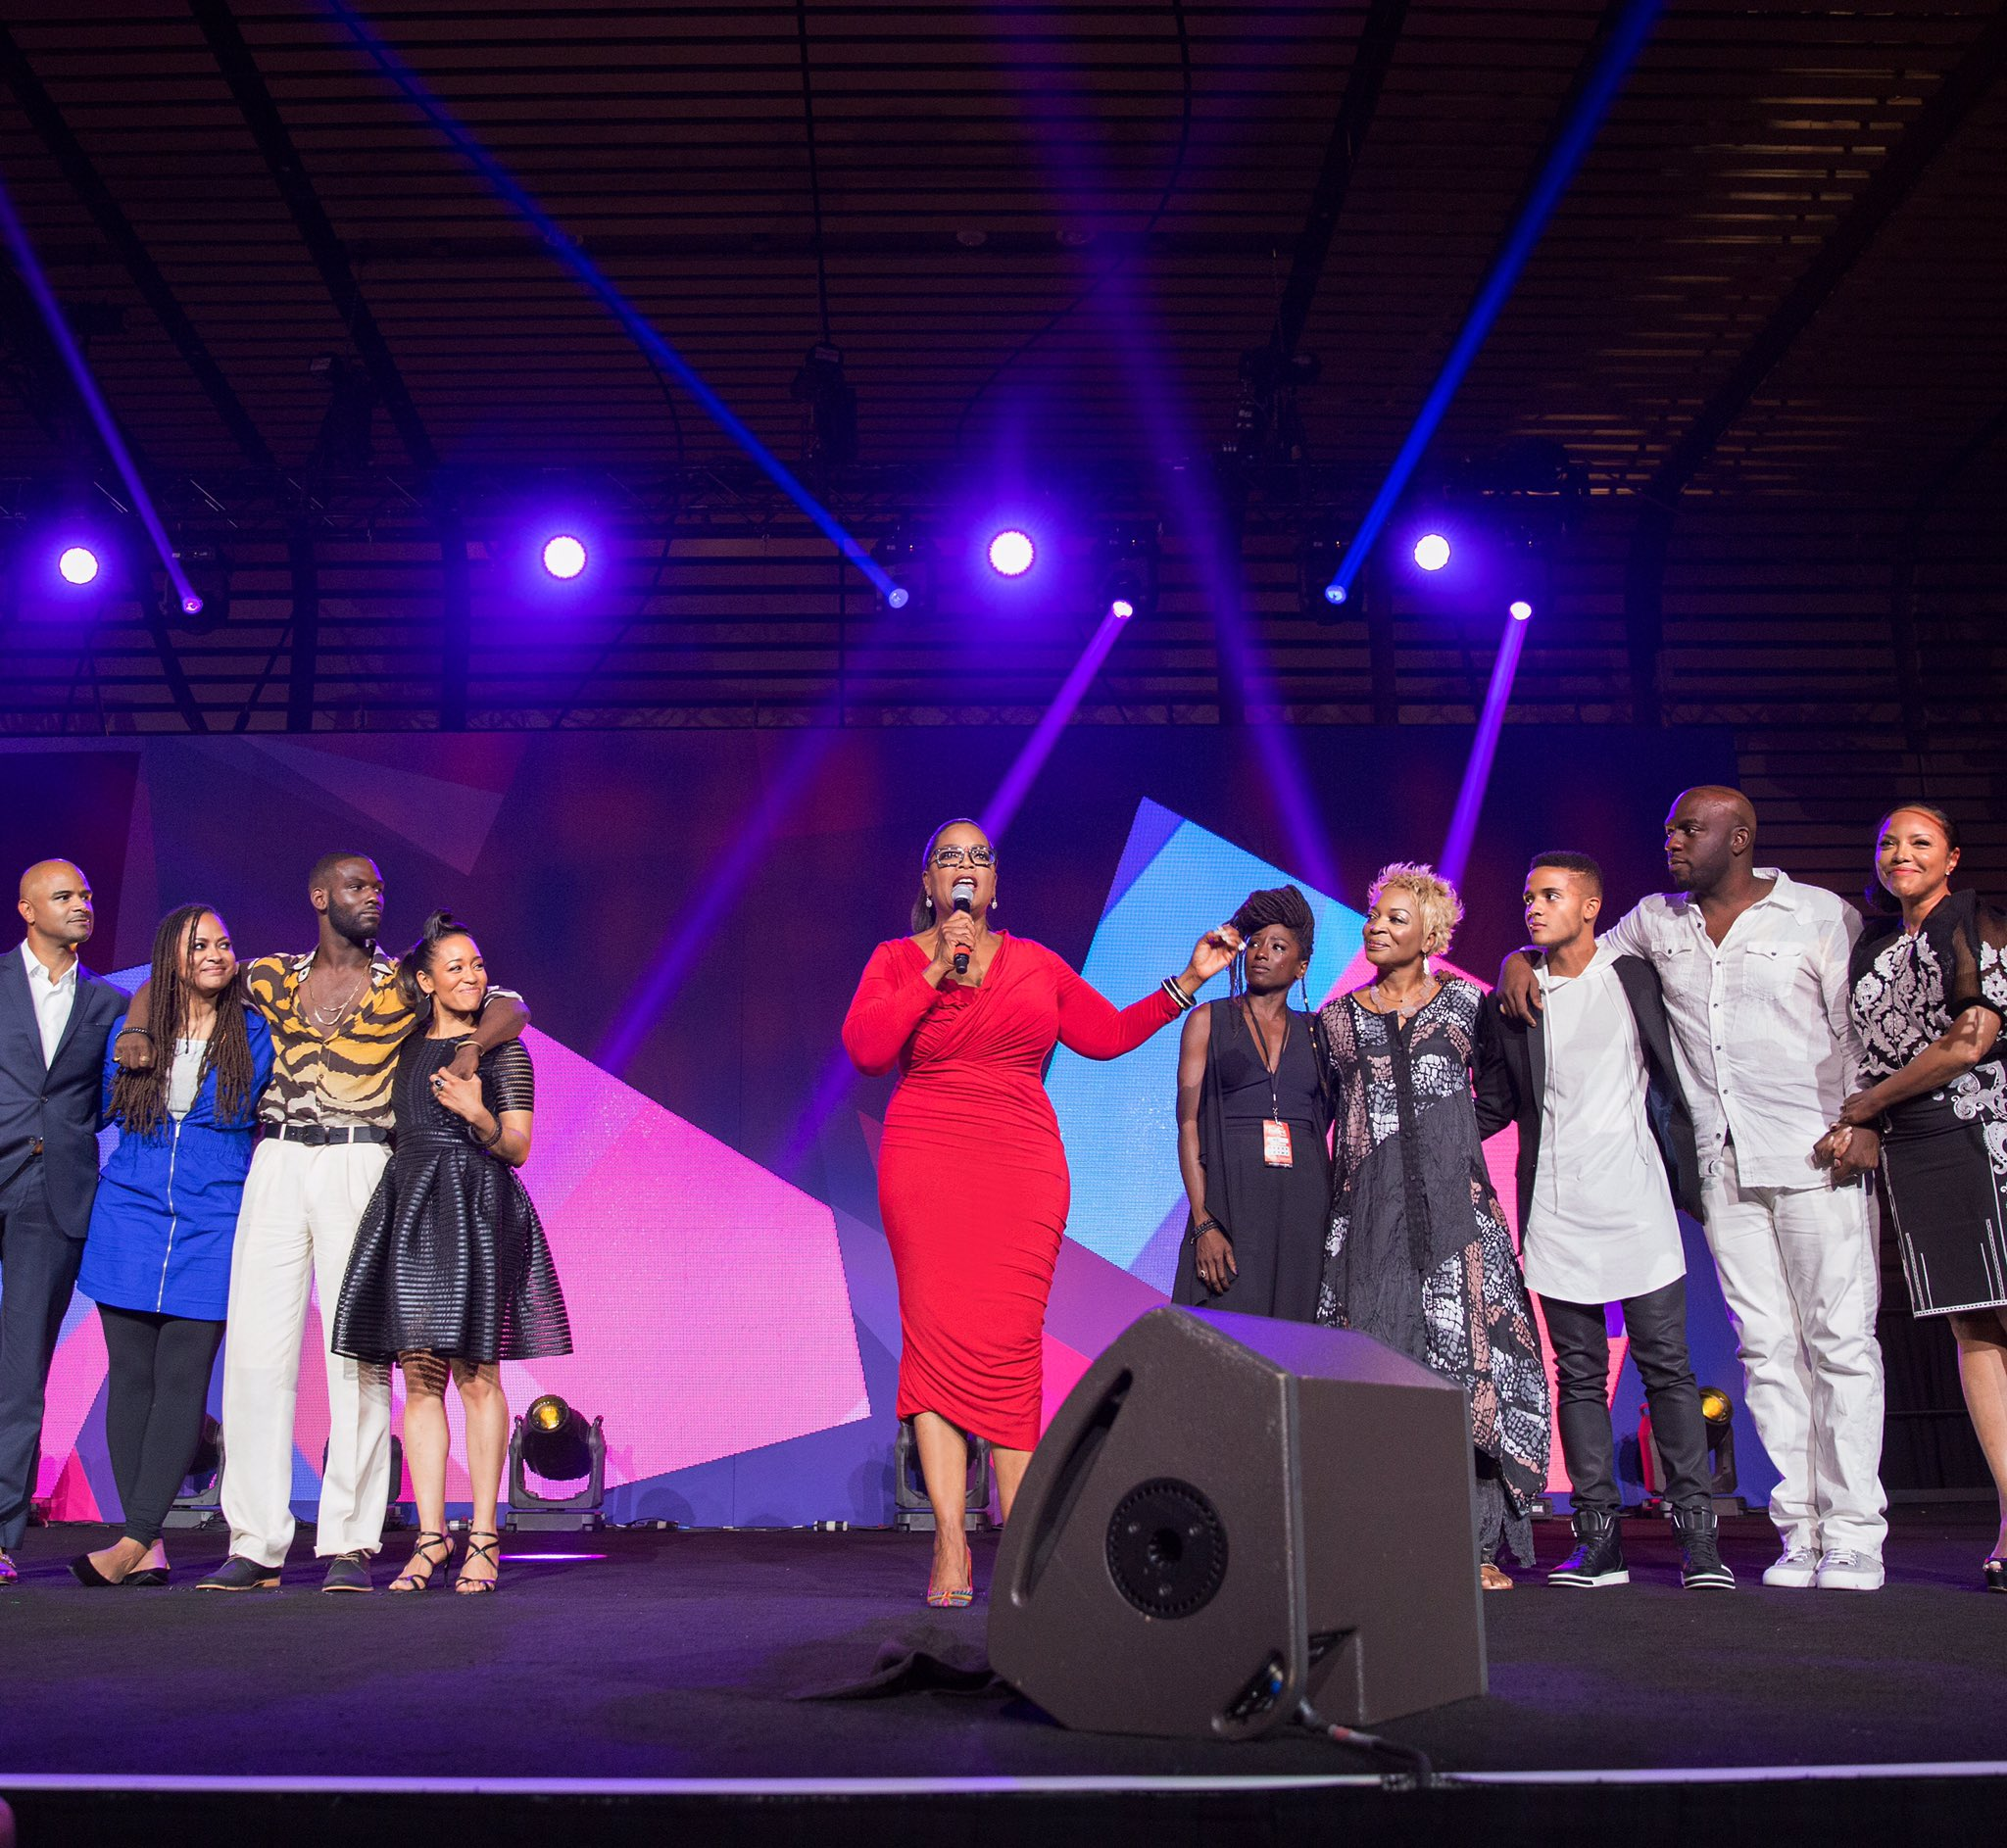 Phenomenal time at my first #EssenceFest. Thanks to all who took time out your day to share it with me. https://t.co/uHOSG3qBqN